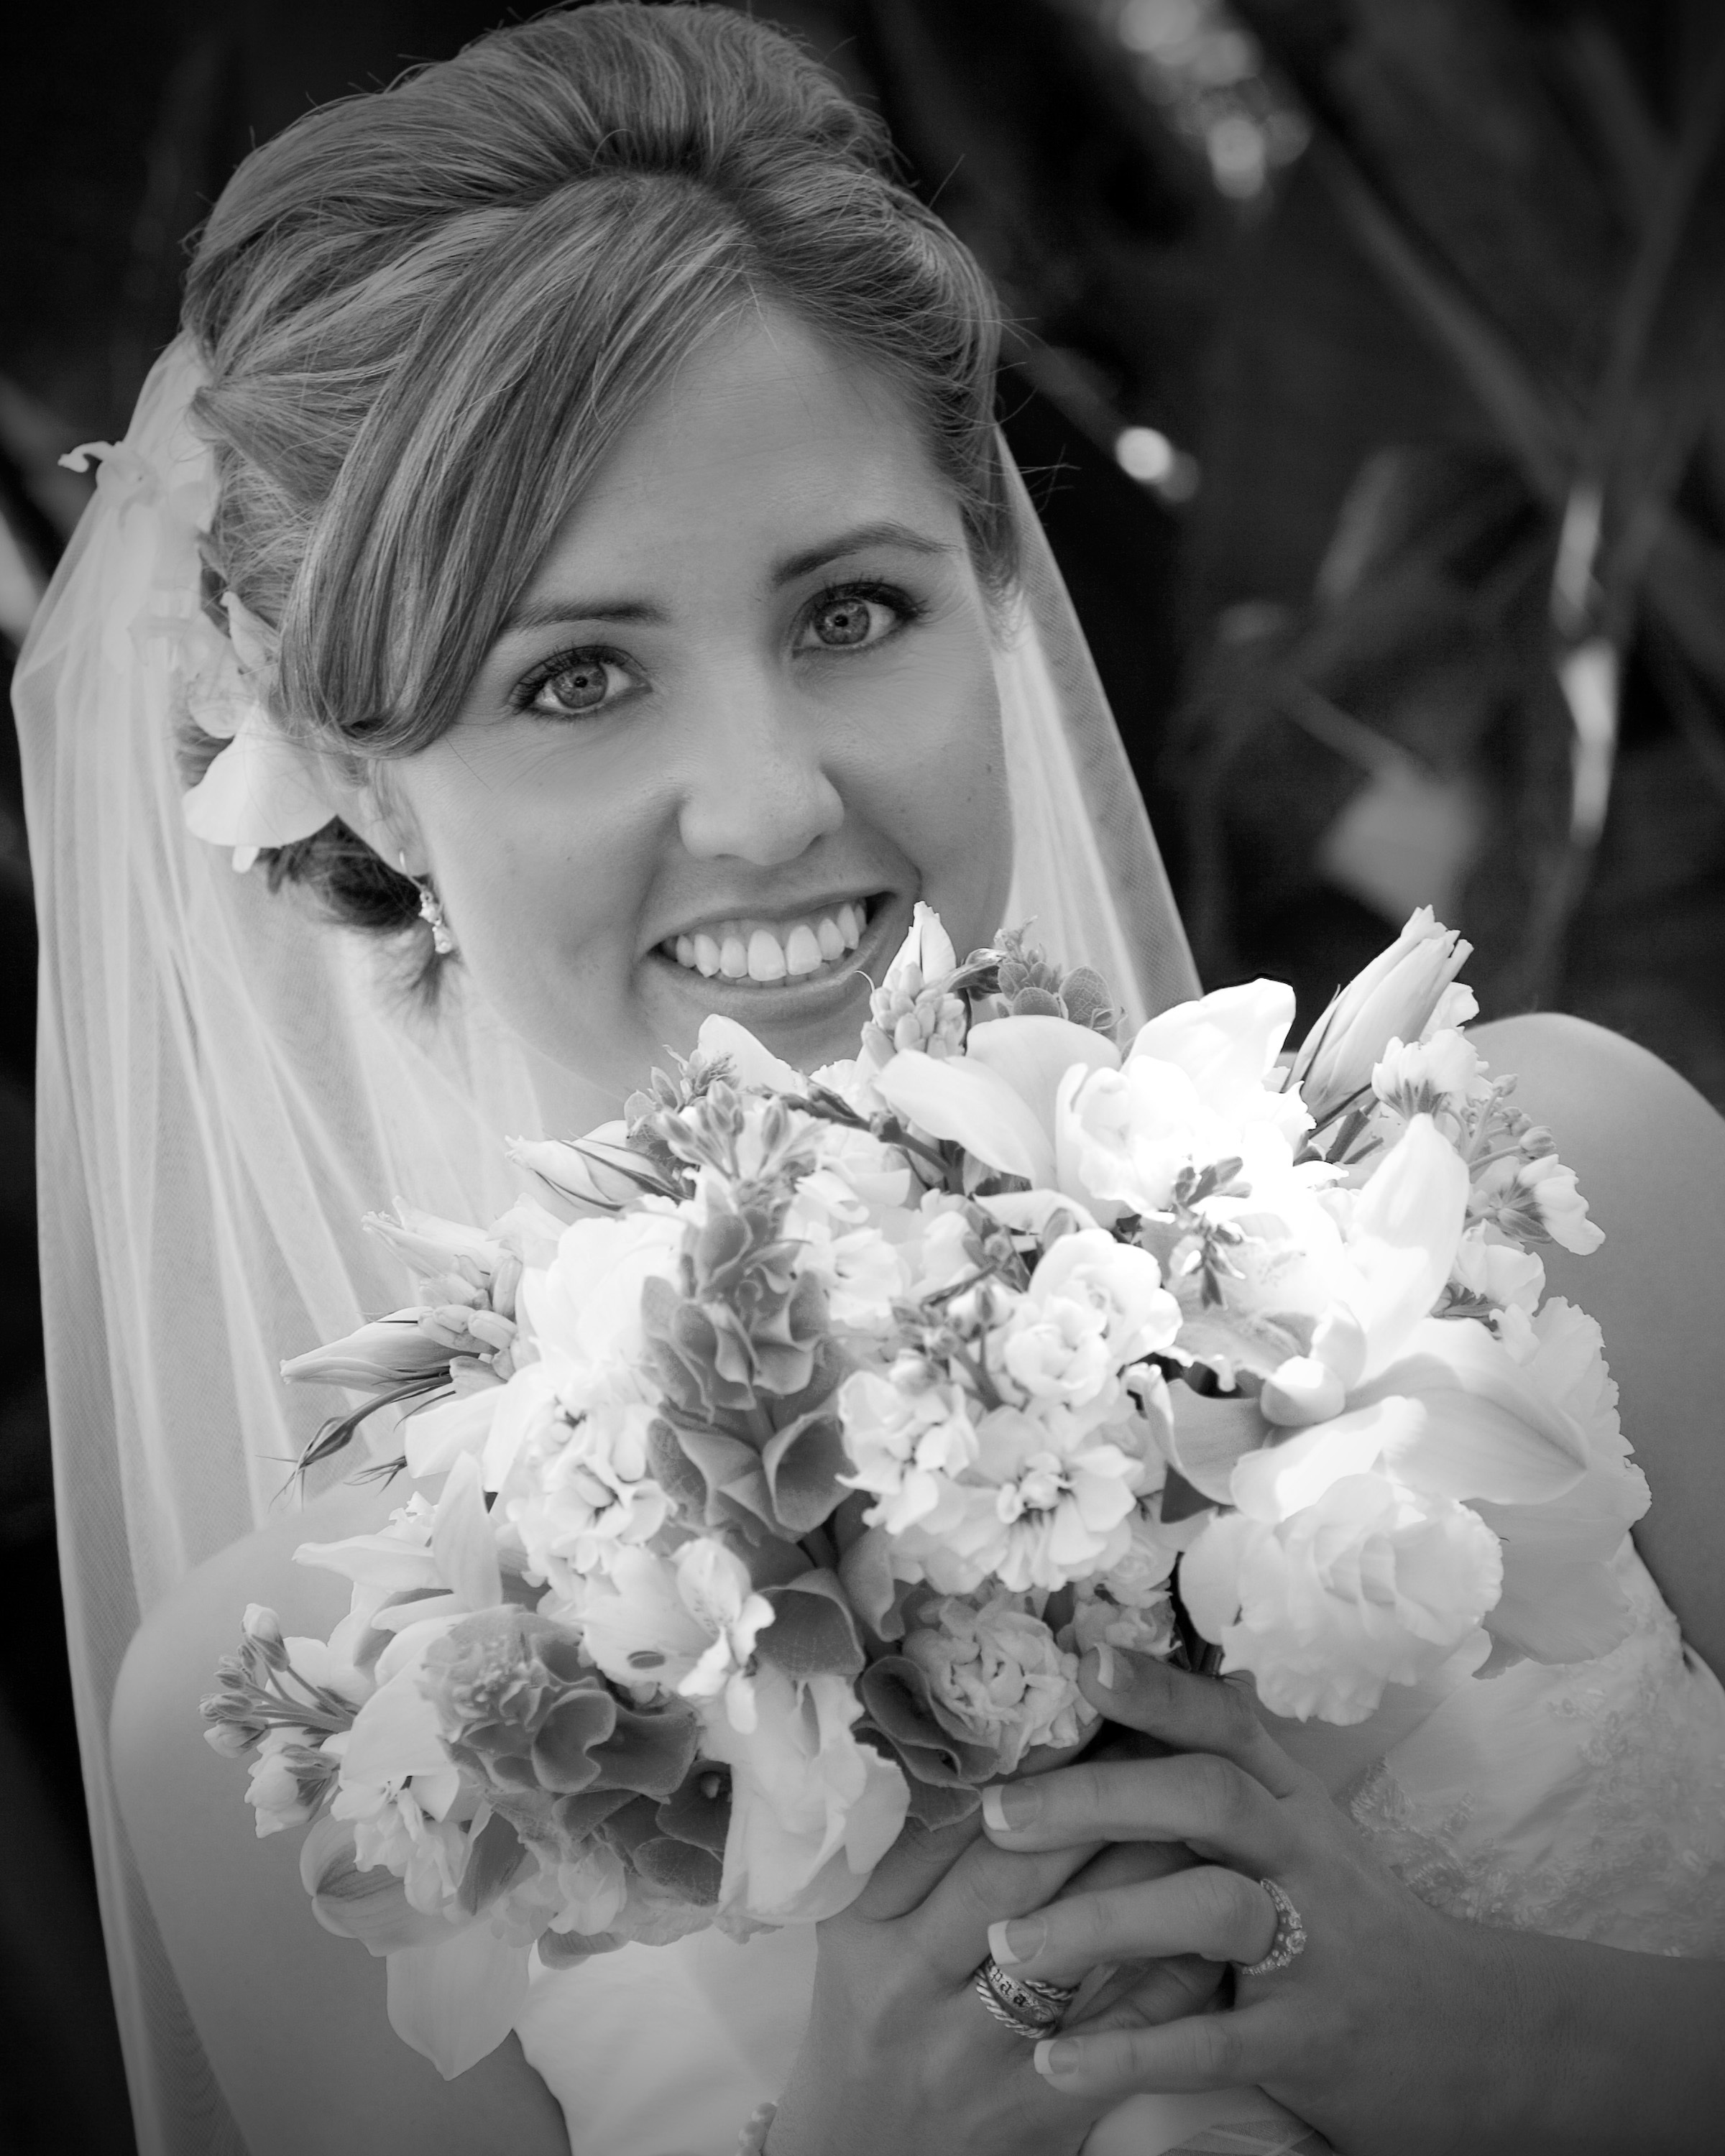 white, black, Bride, Bw, Joshua kline productions